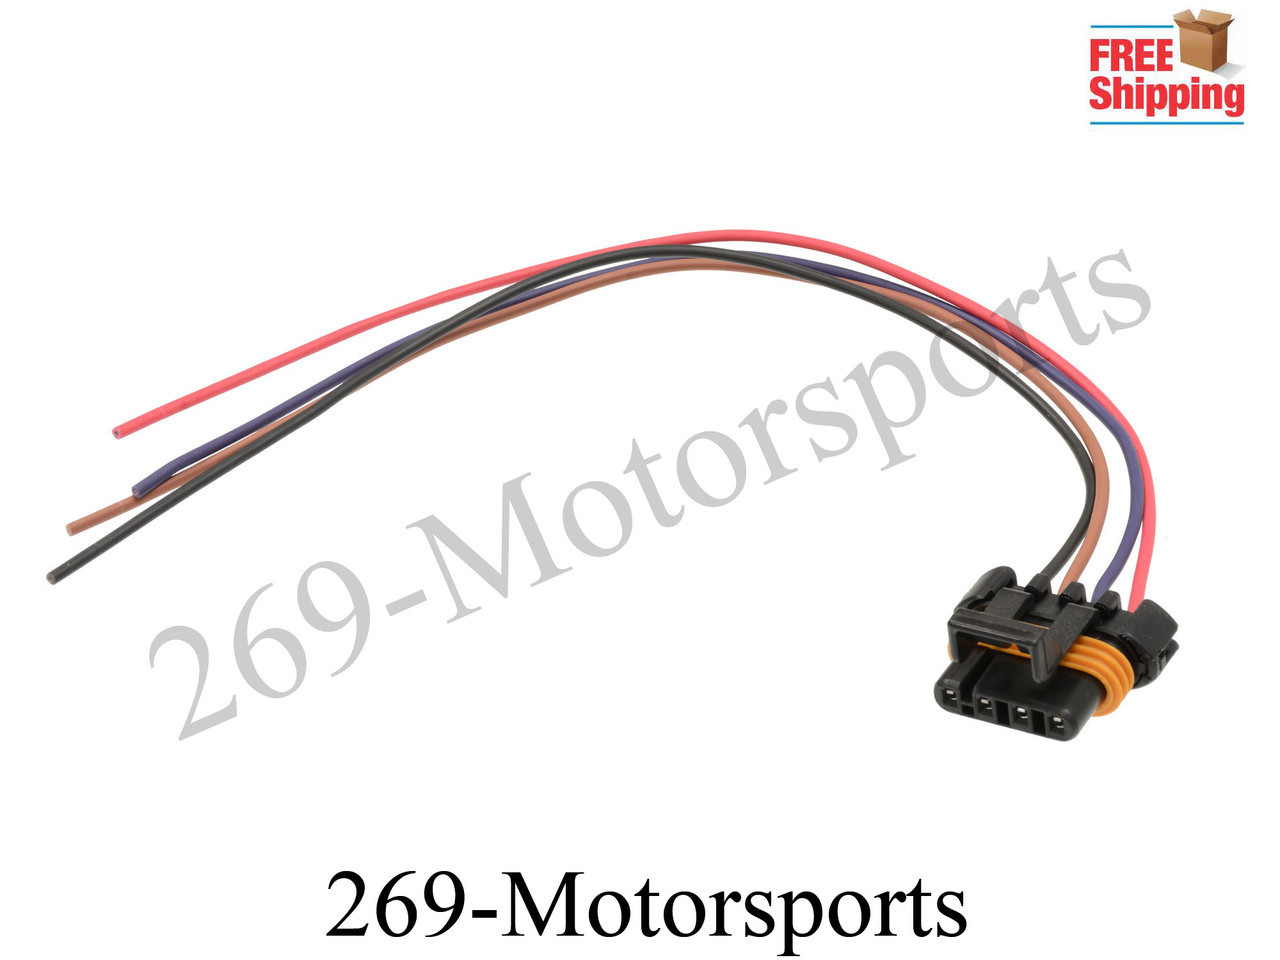 hight resolution of o2 oxygen sensor wiring harness connector pigtail for gm camaro firebird ls1 lt1